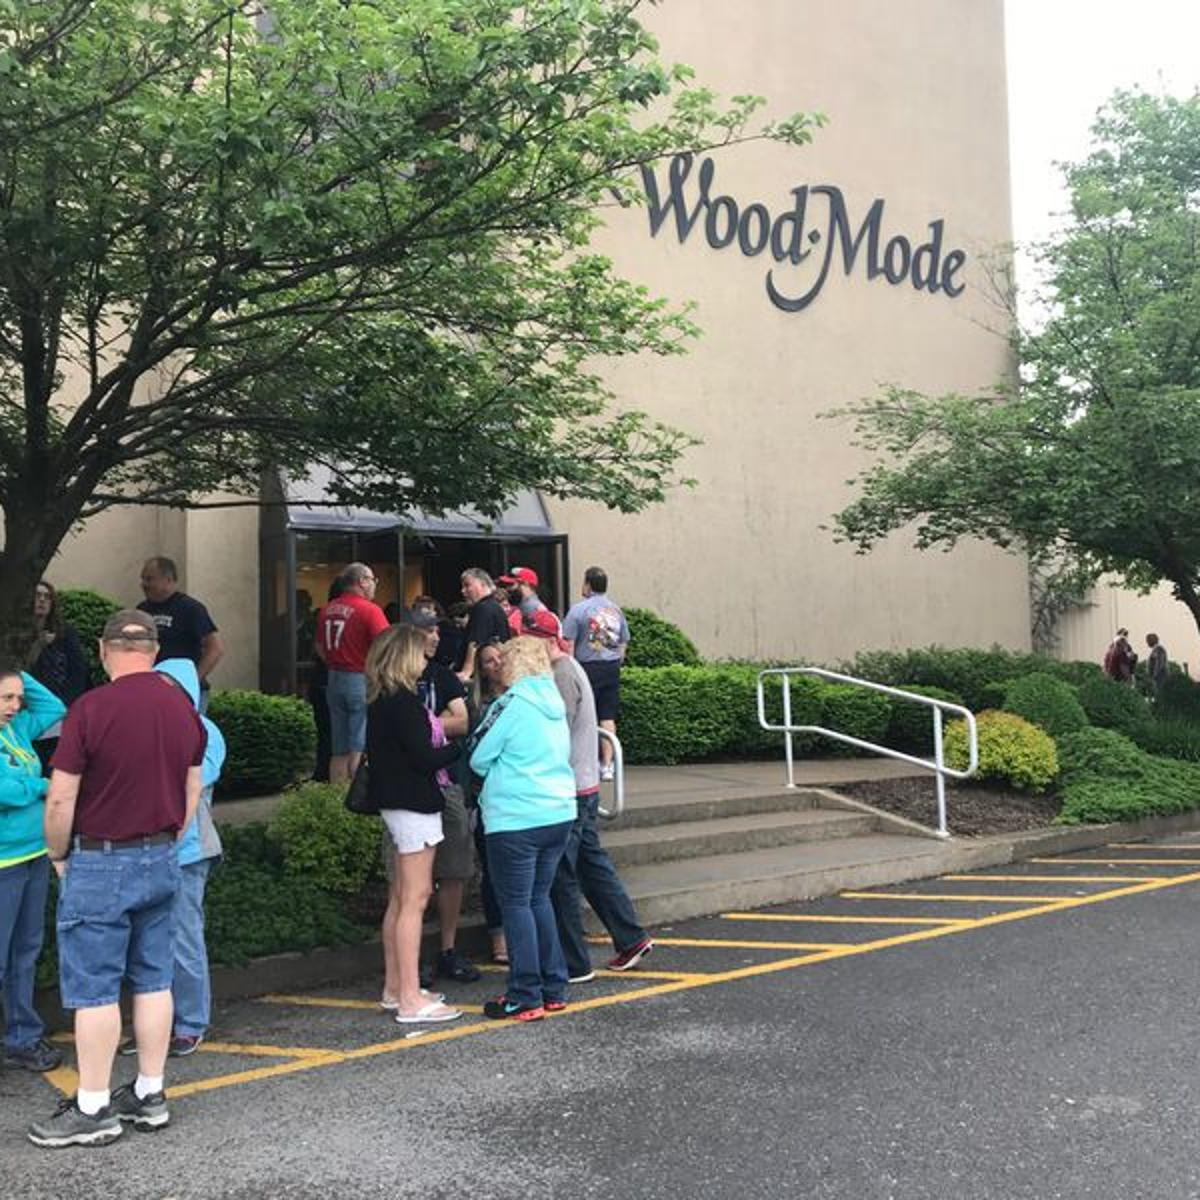 Benefits canceled, Wood-Mode employees go from loyal to